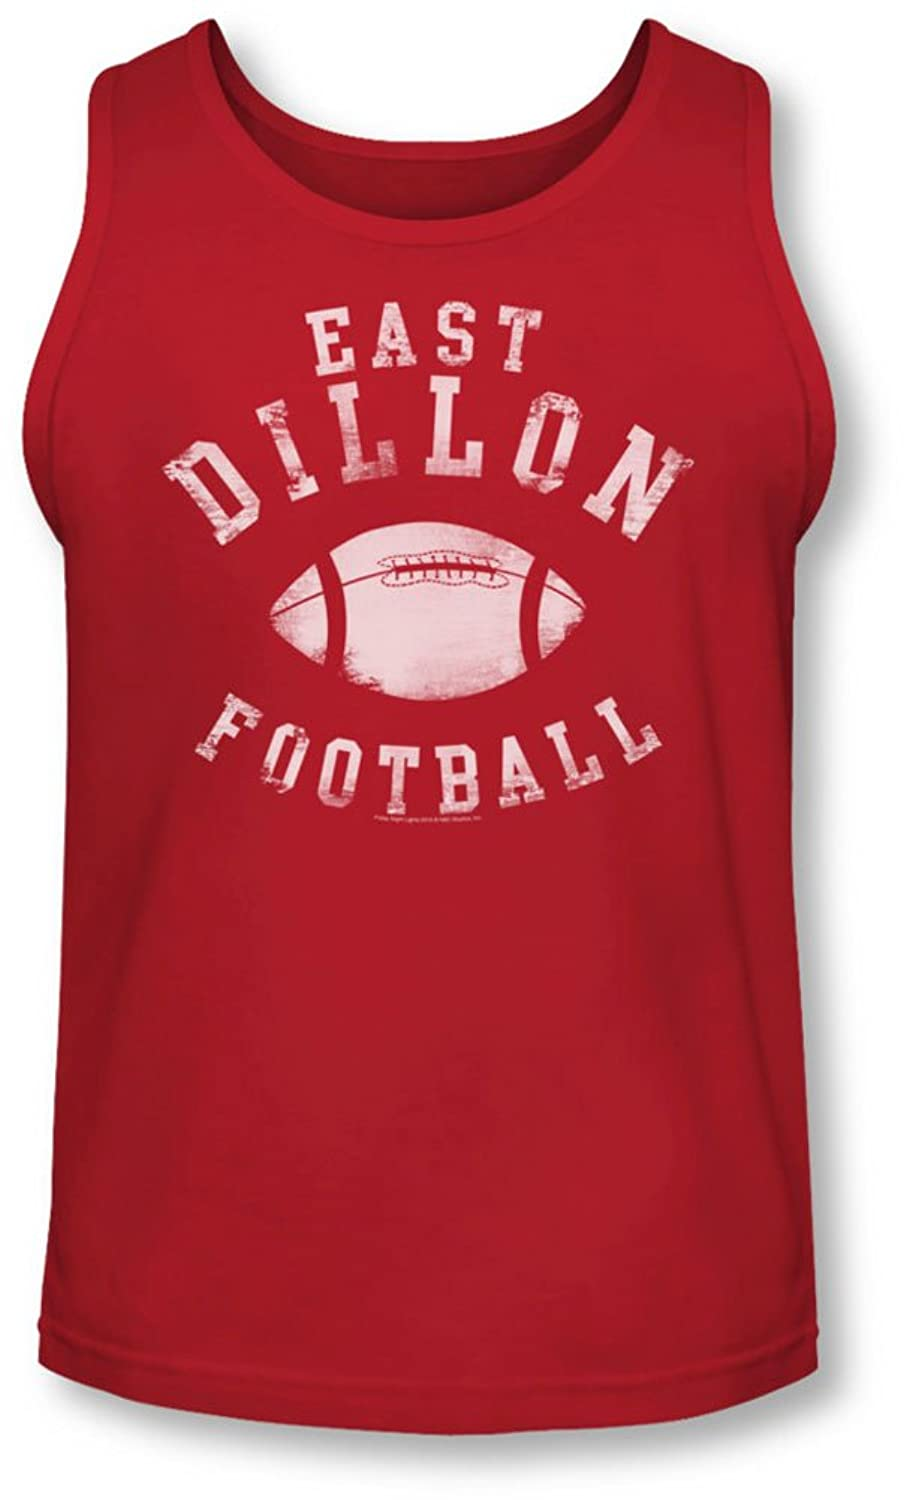 Friday Night Lts - Mens East Dillon Football Tank-Top